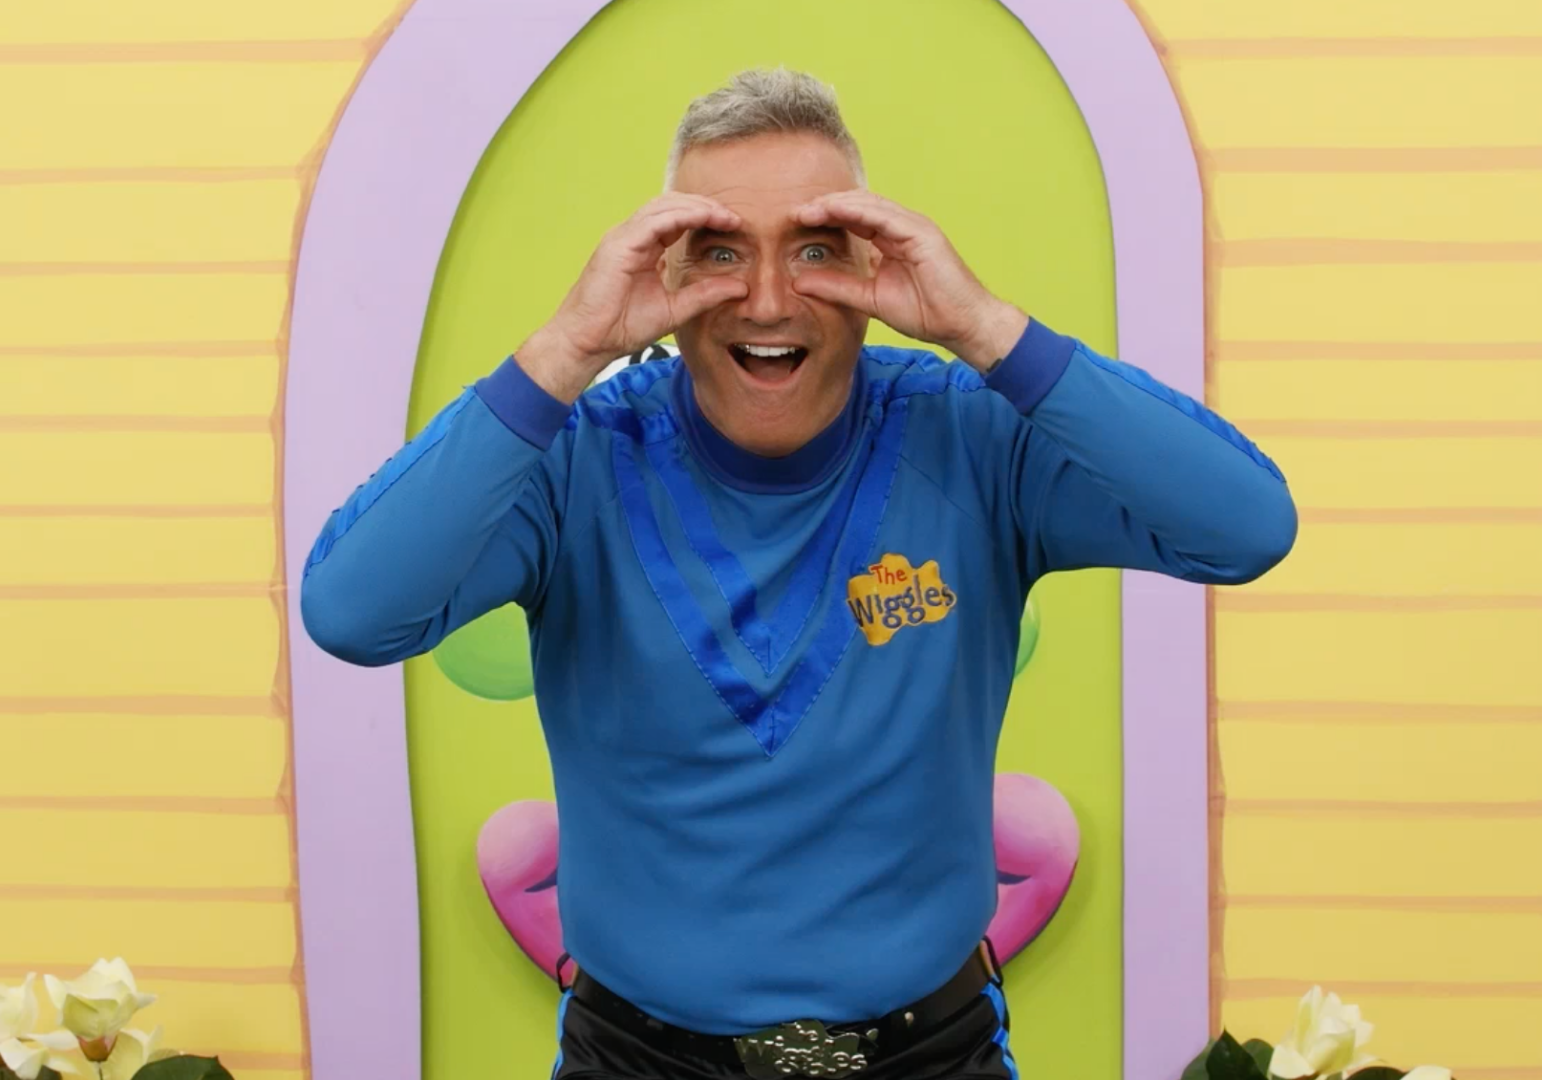 Be An Explorer with Anthony! by The Wiggles